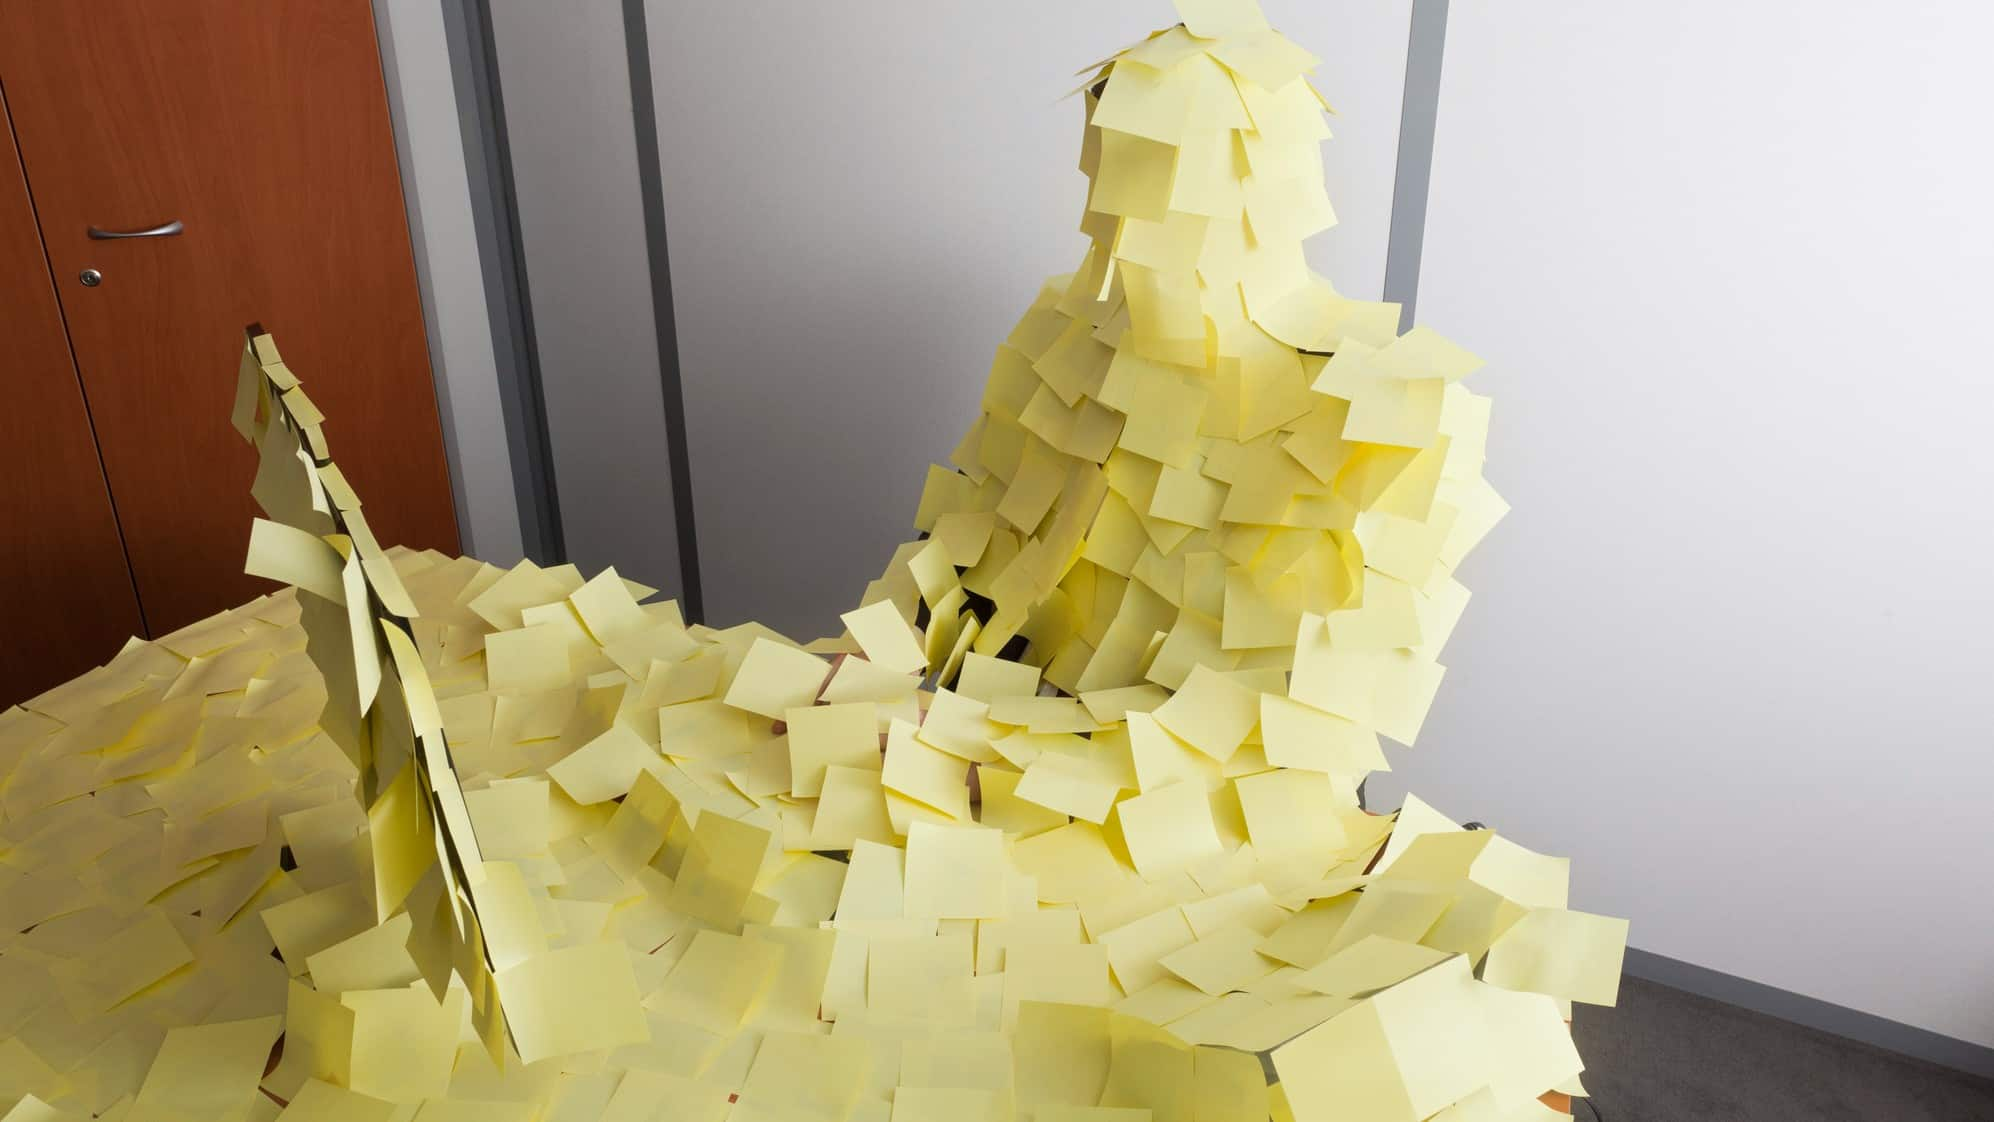 An office worker and his desk covered in yellow post-it notes